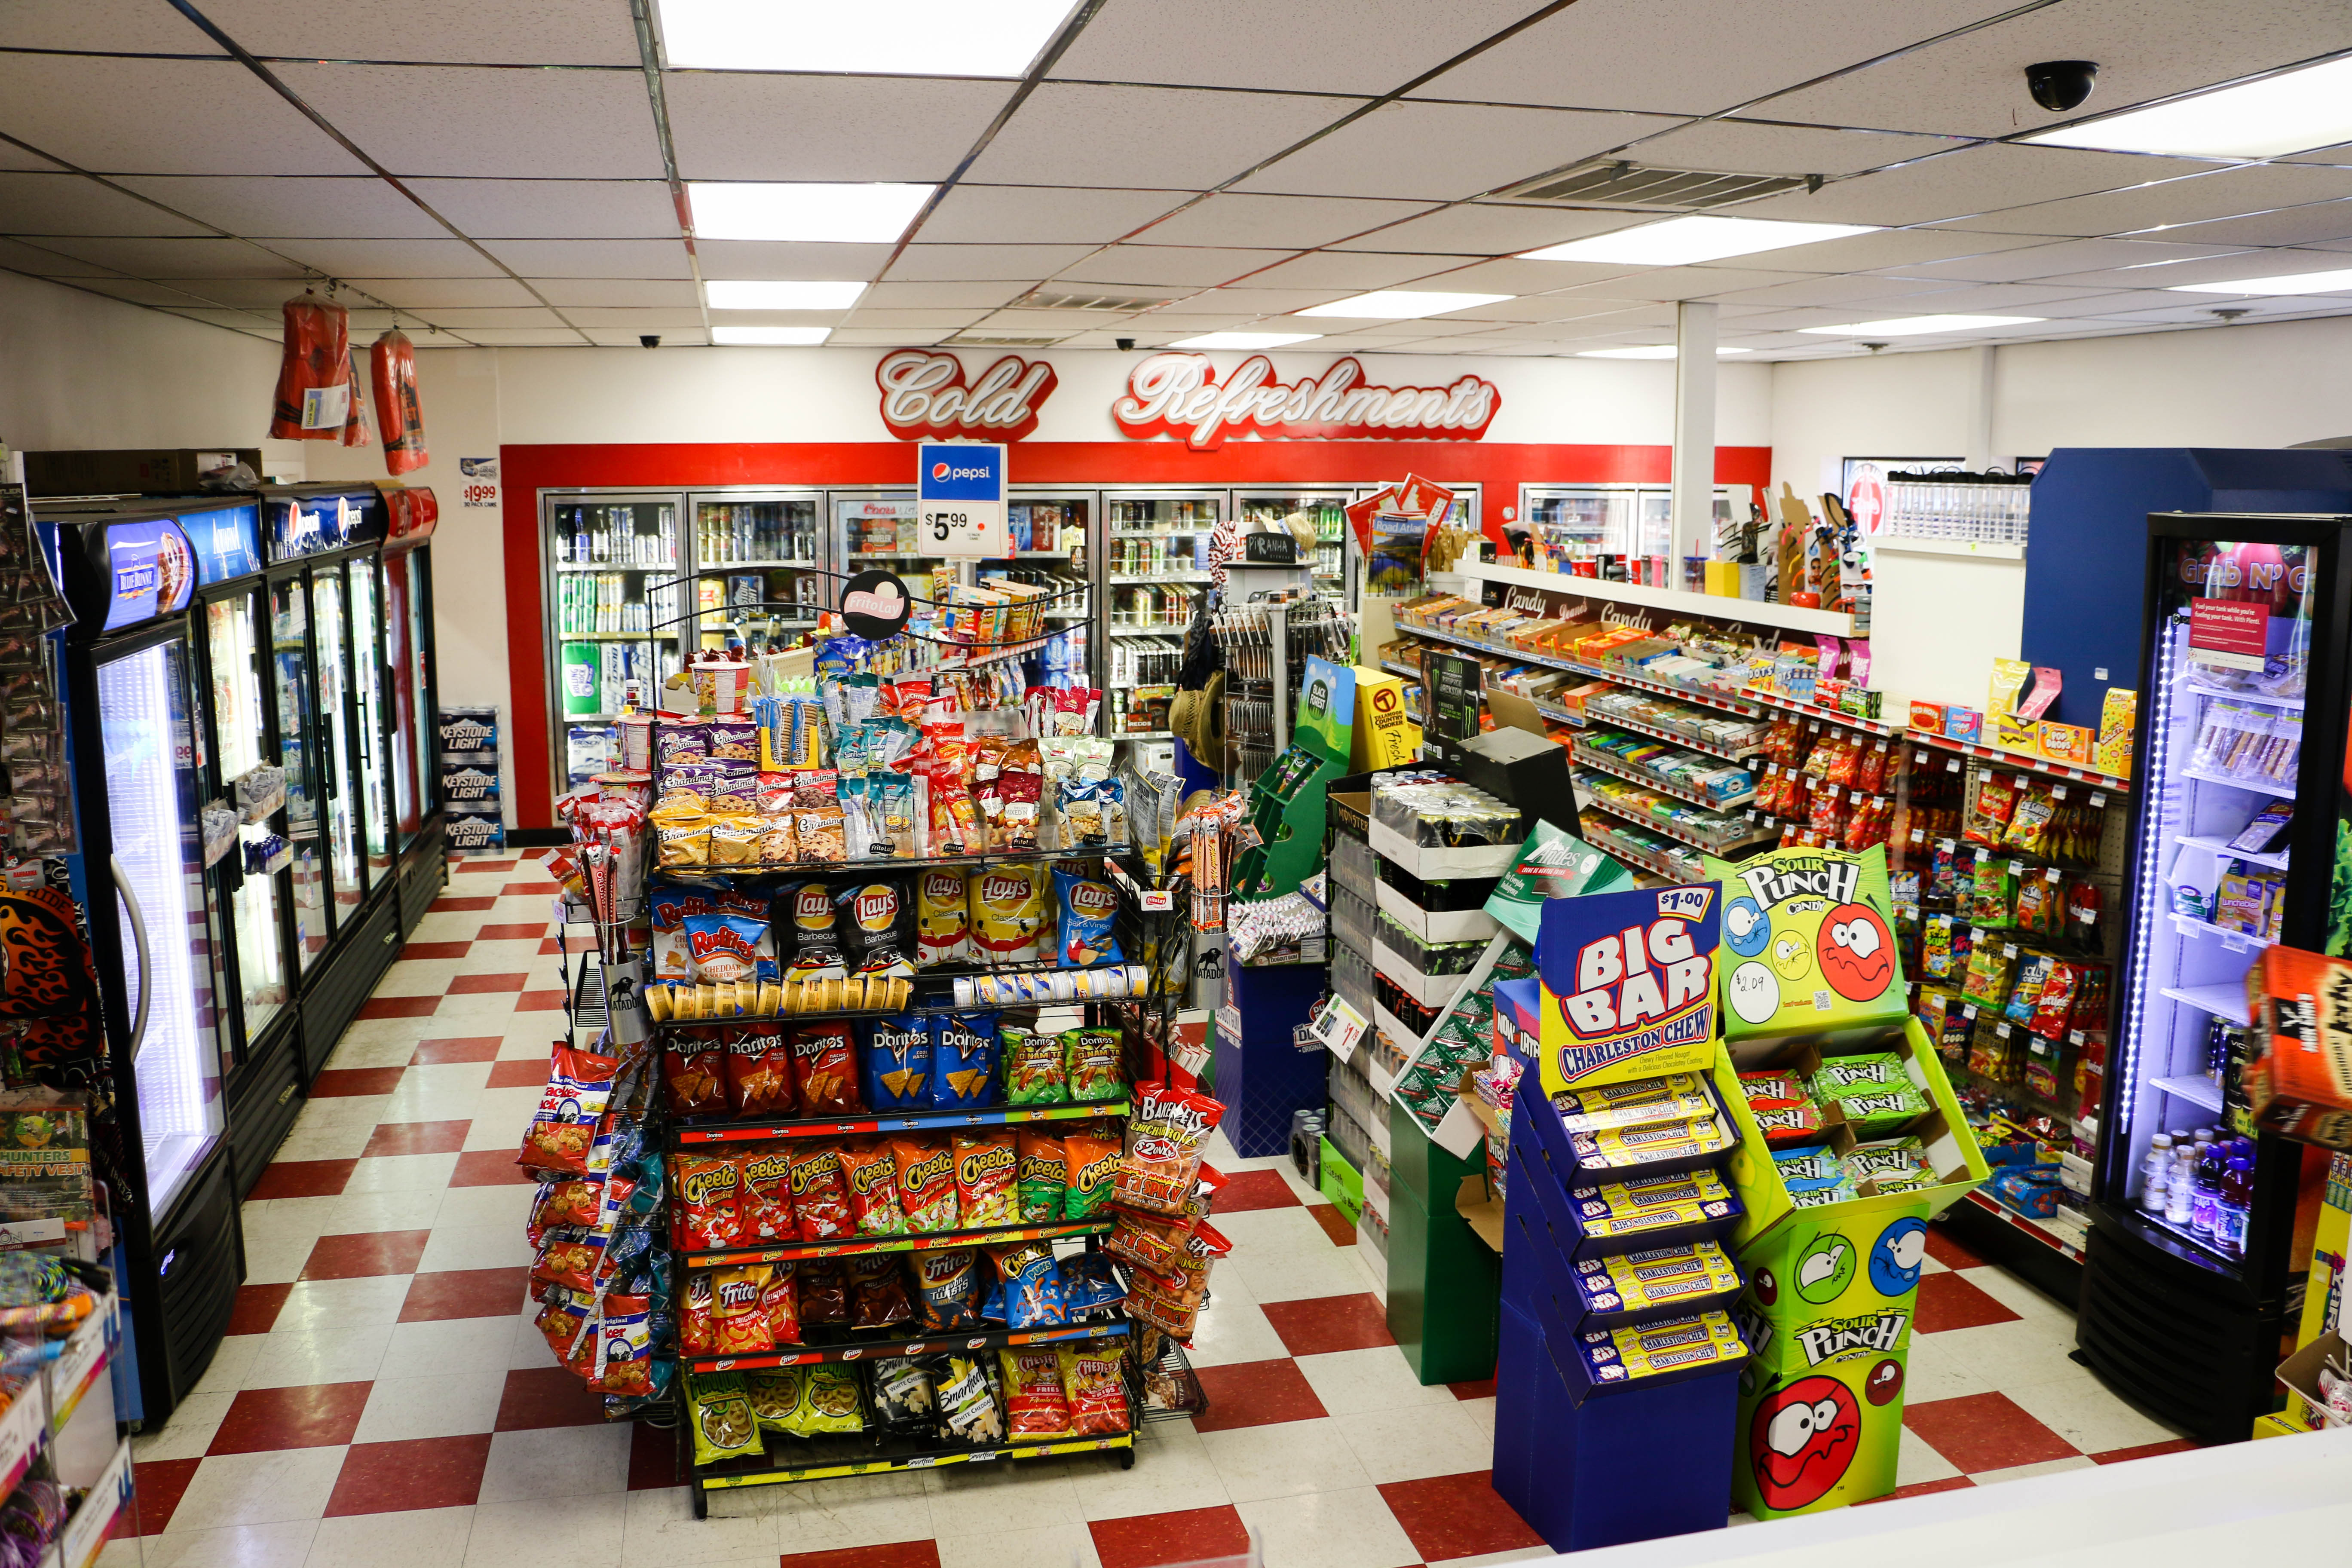 business plan of busters convience store Millenniummart convenience store business plan executive summary millenniummart will be the first fully automated, 24-hour convenience store that is more like an enormous dispensing machine than a traditional store.